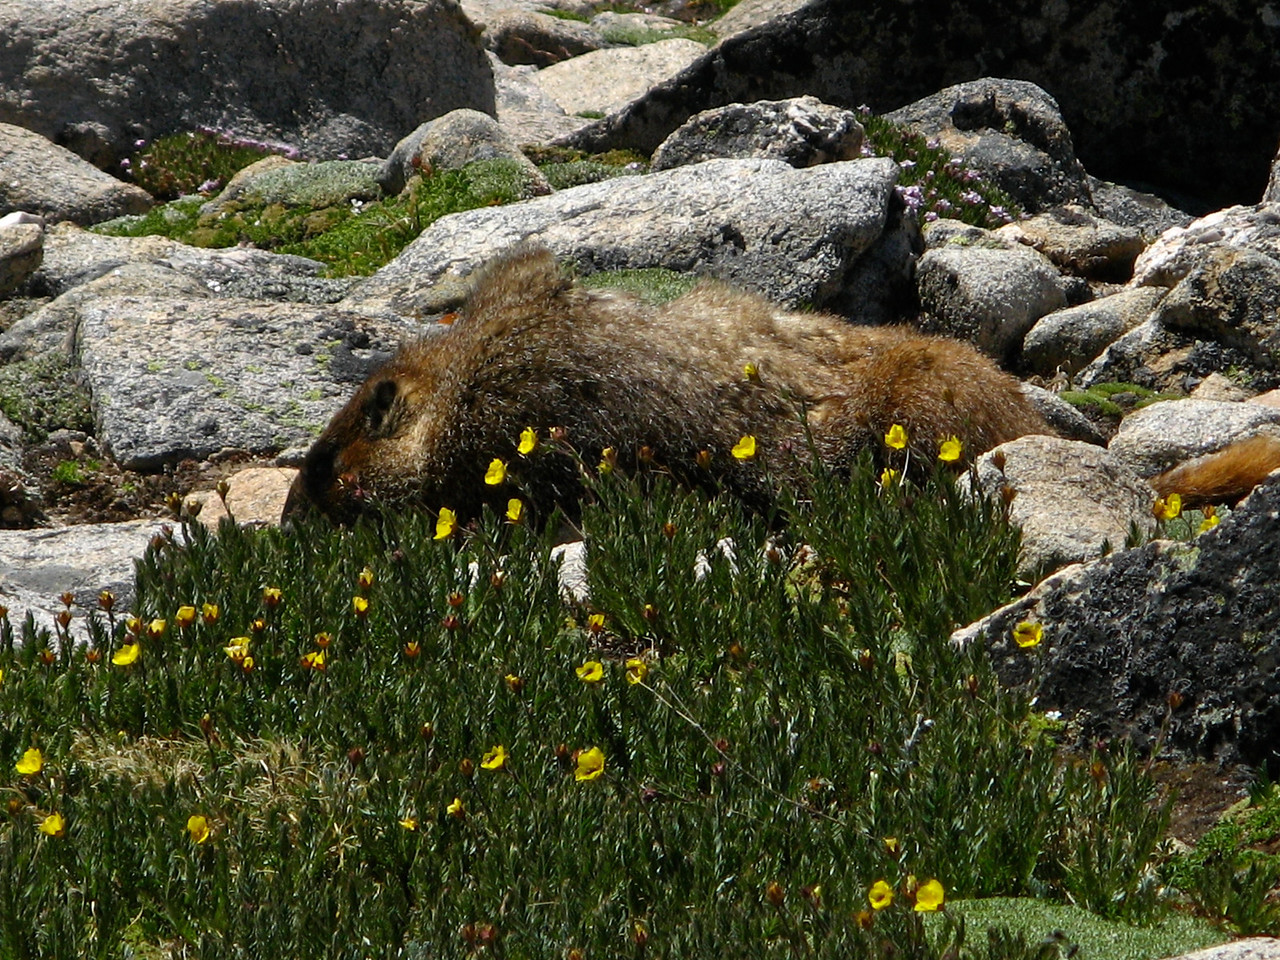 Marmots can be found everywhere near the peak.